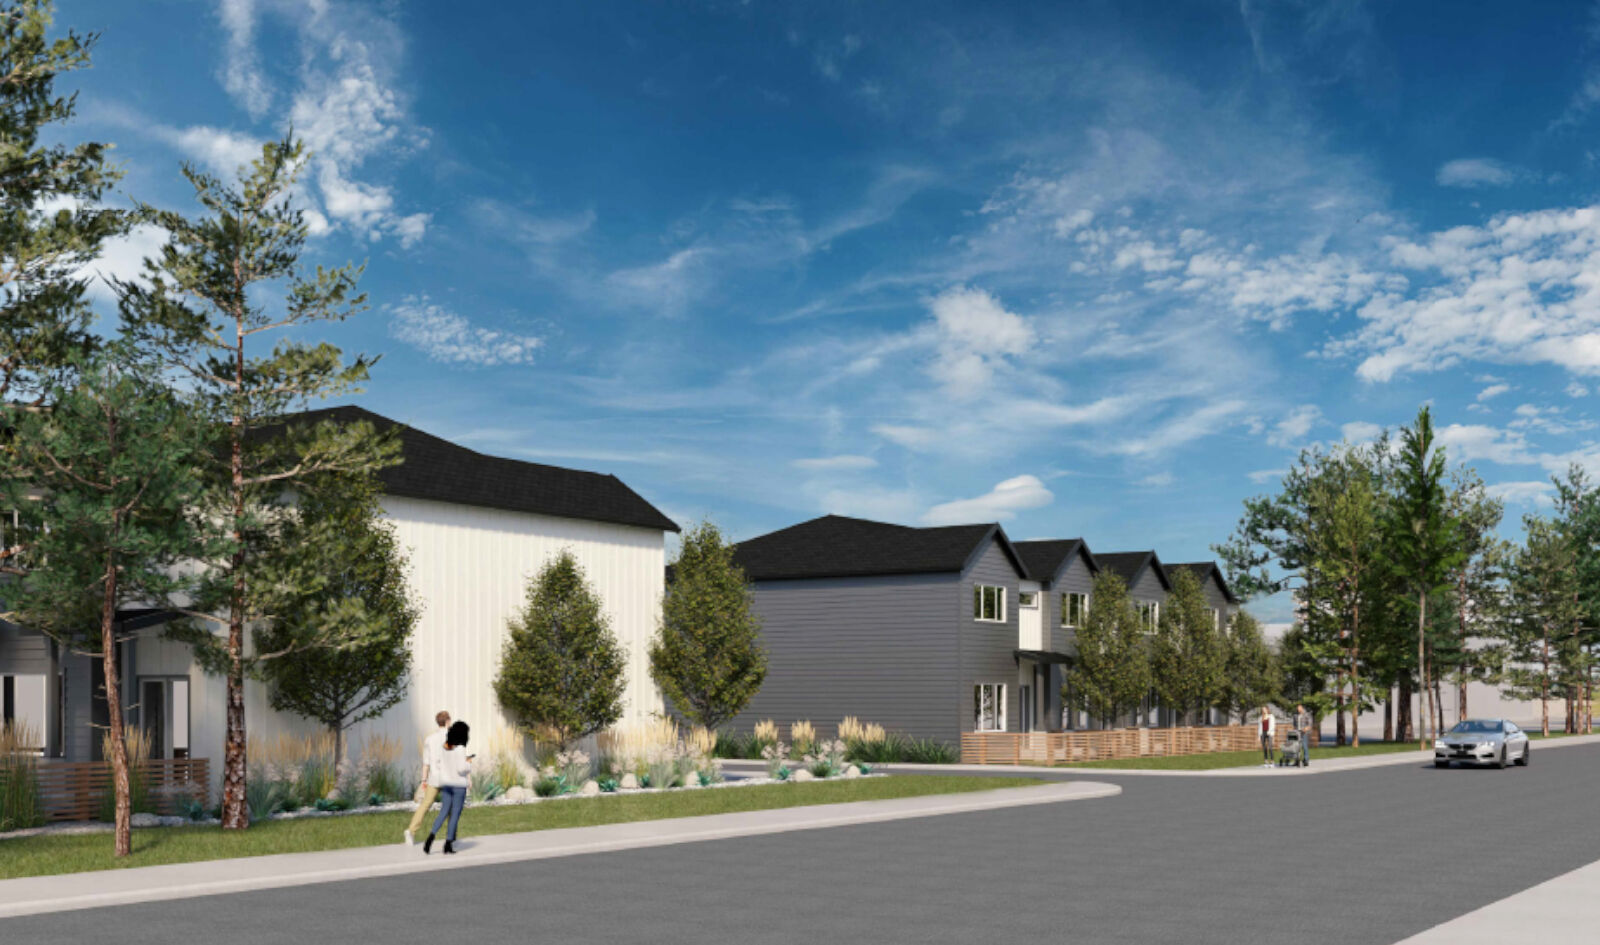 Have your say on proposed Timmins St. development